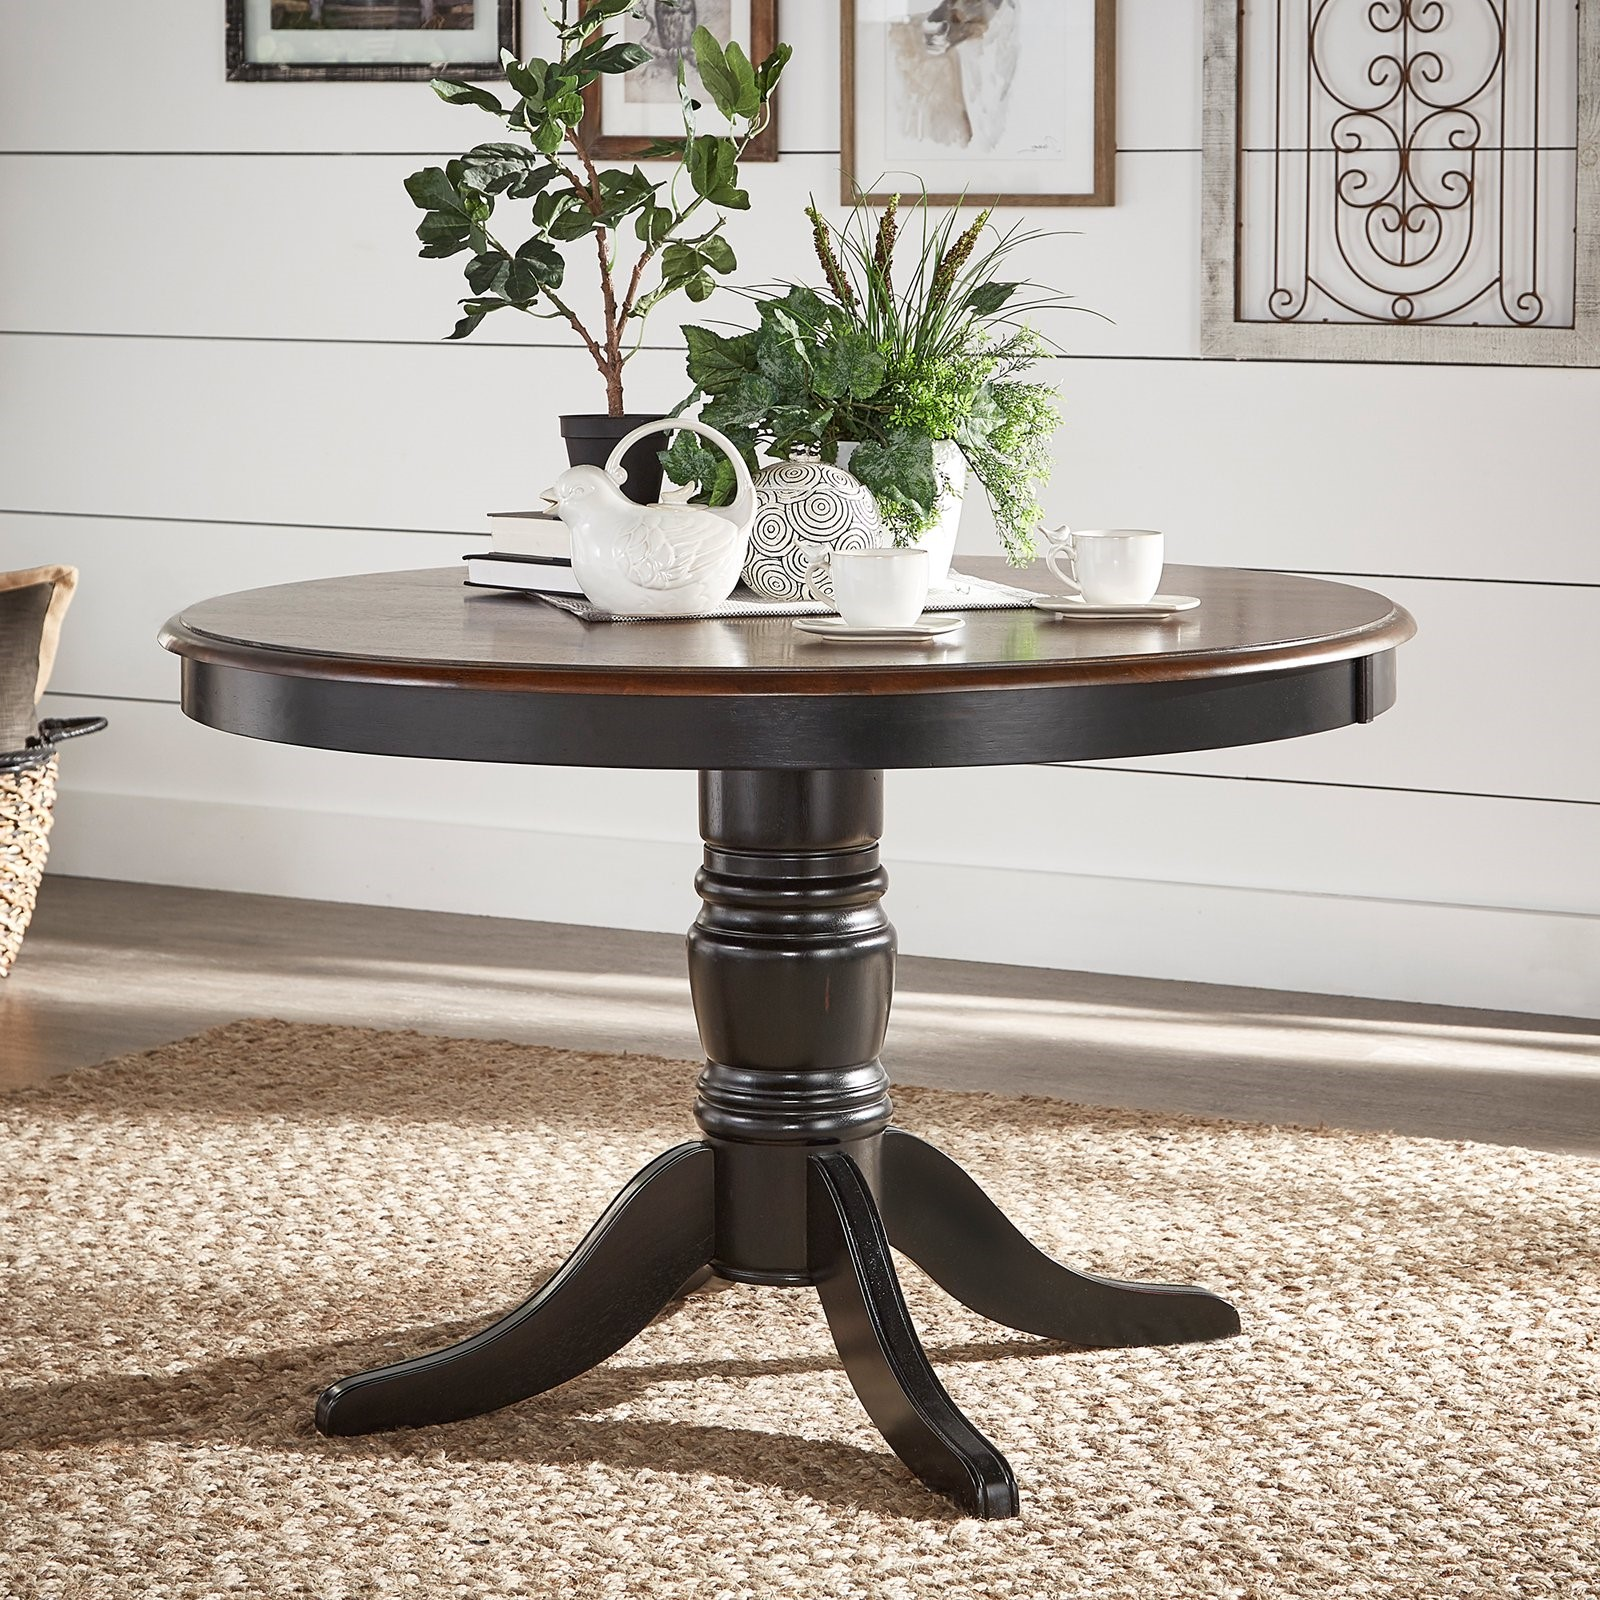 Weston Home Two Tone 48 in. Round Dining Table